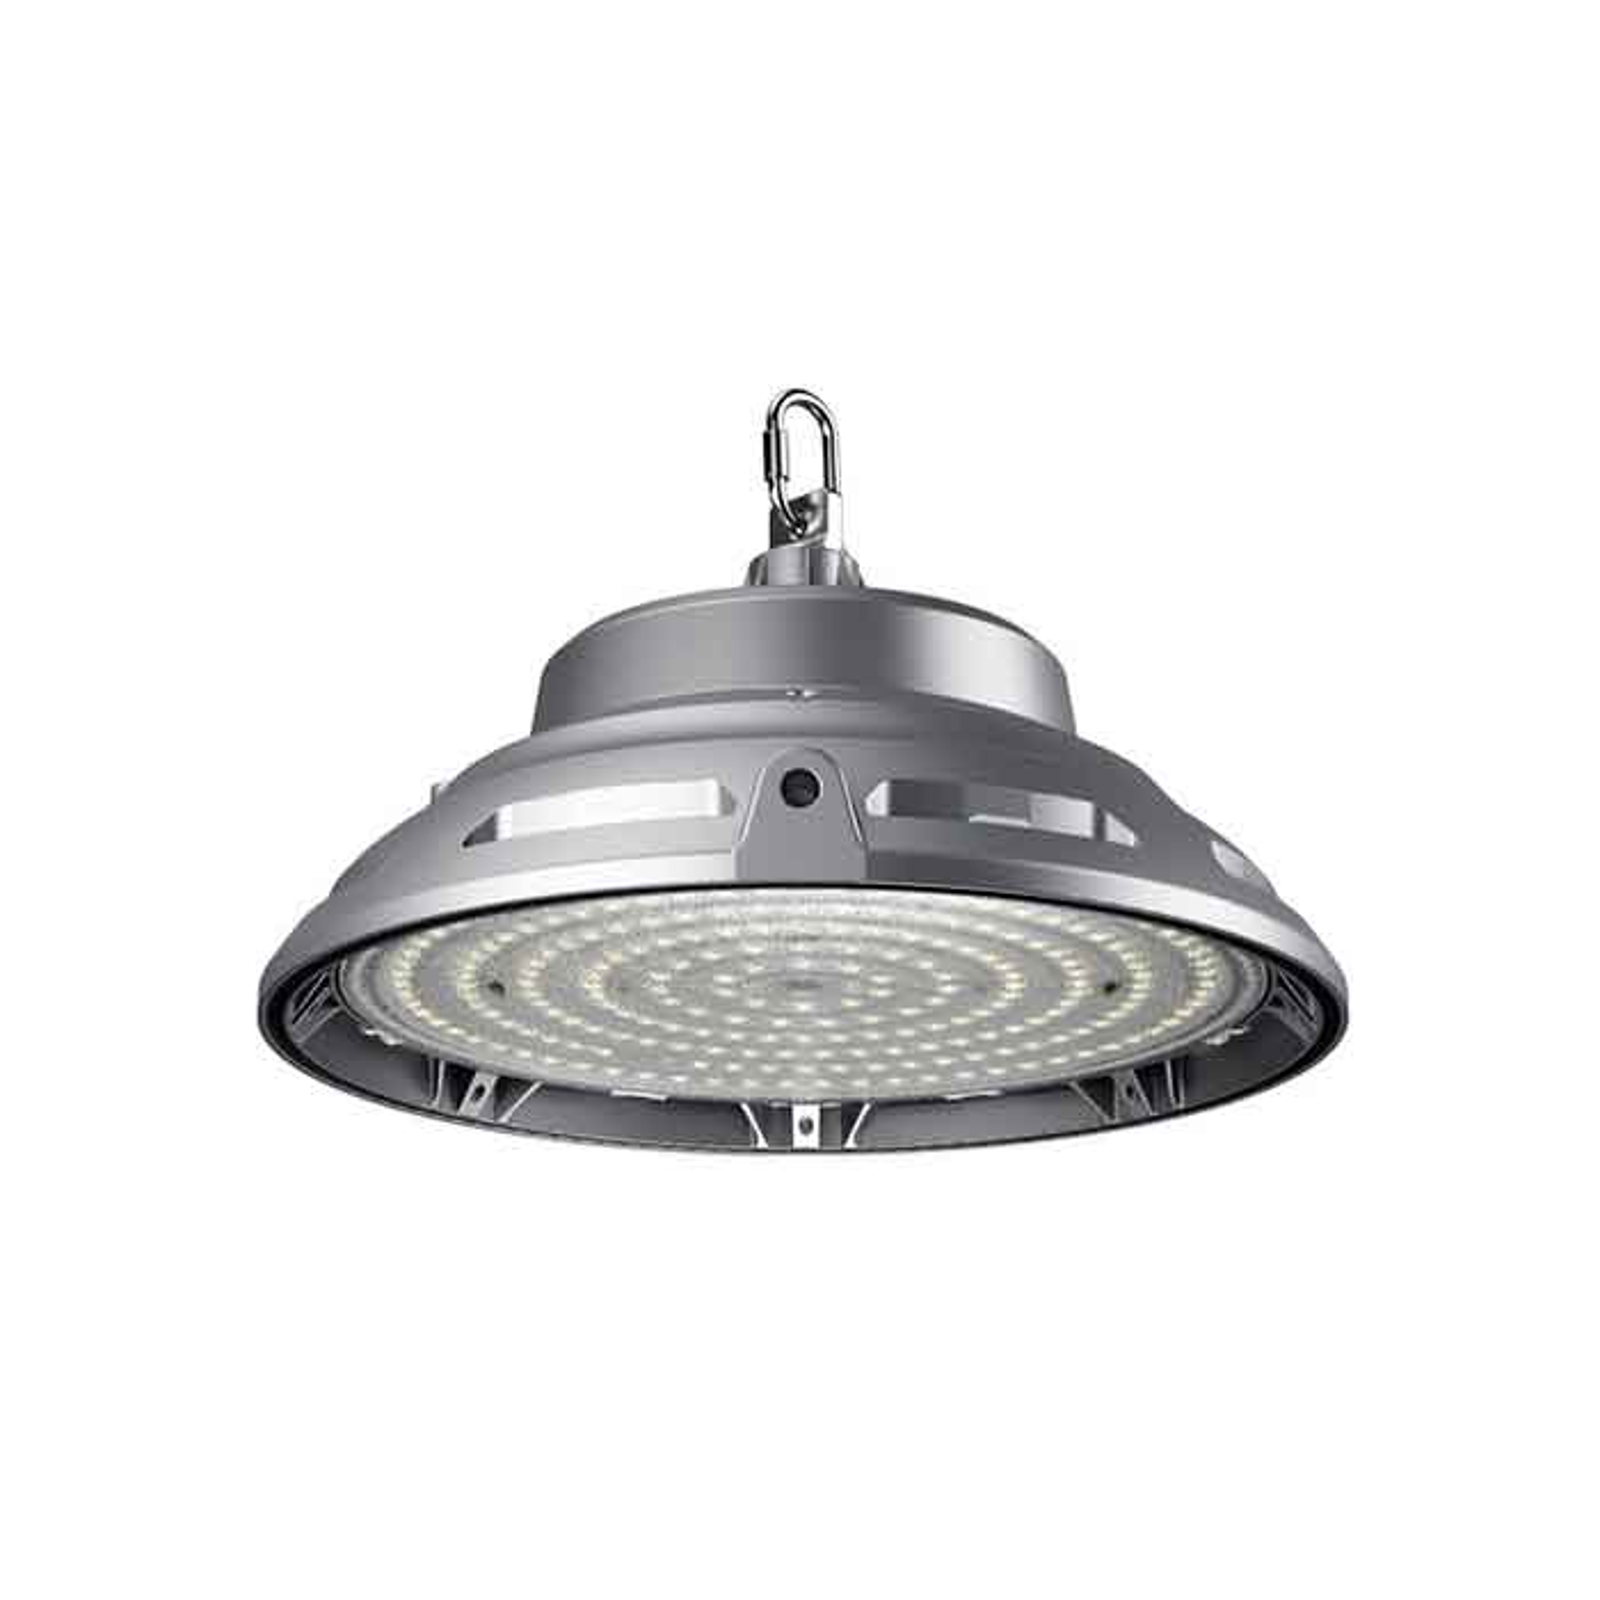 Siteco Highbay 41 LED-Hallenstrahler IP65 80W